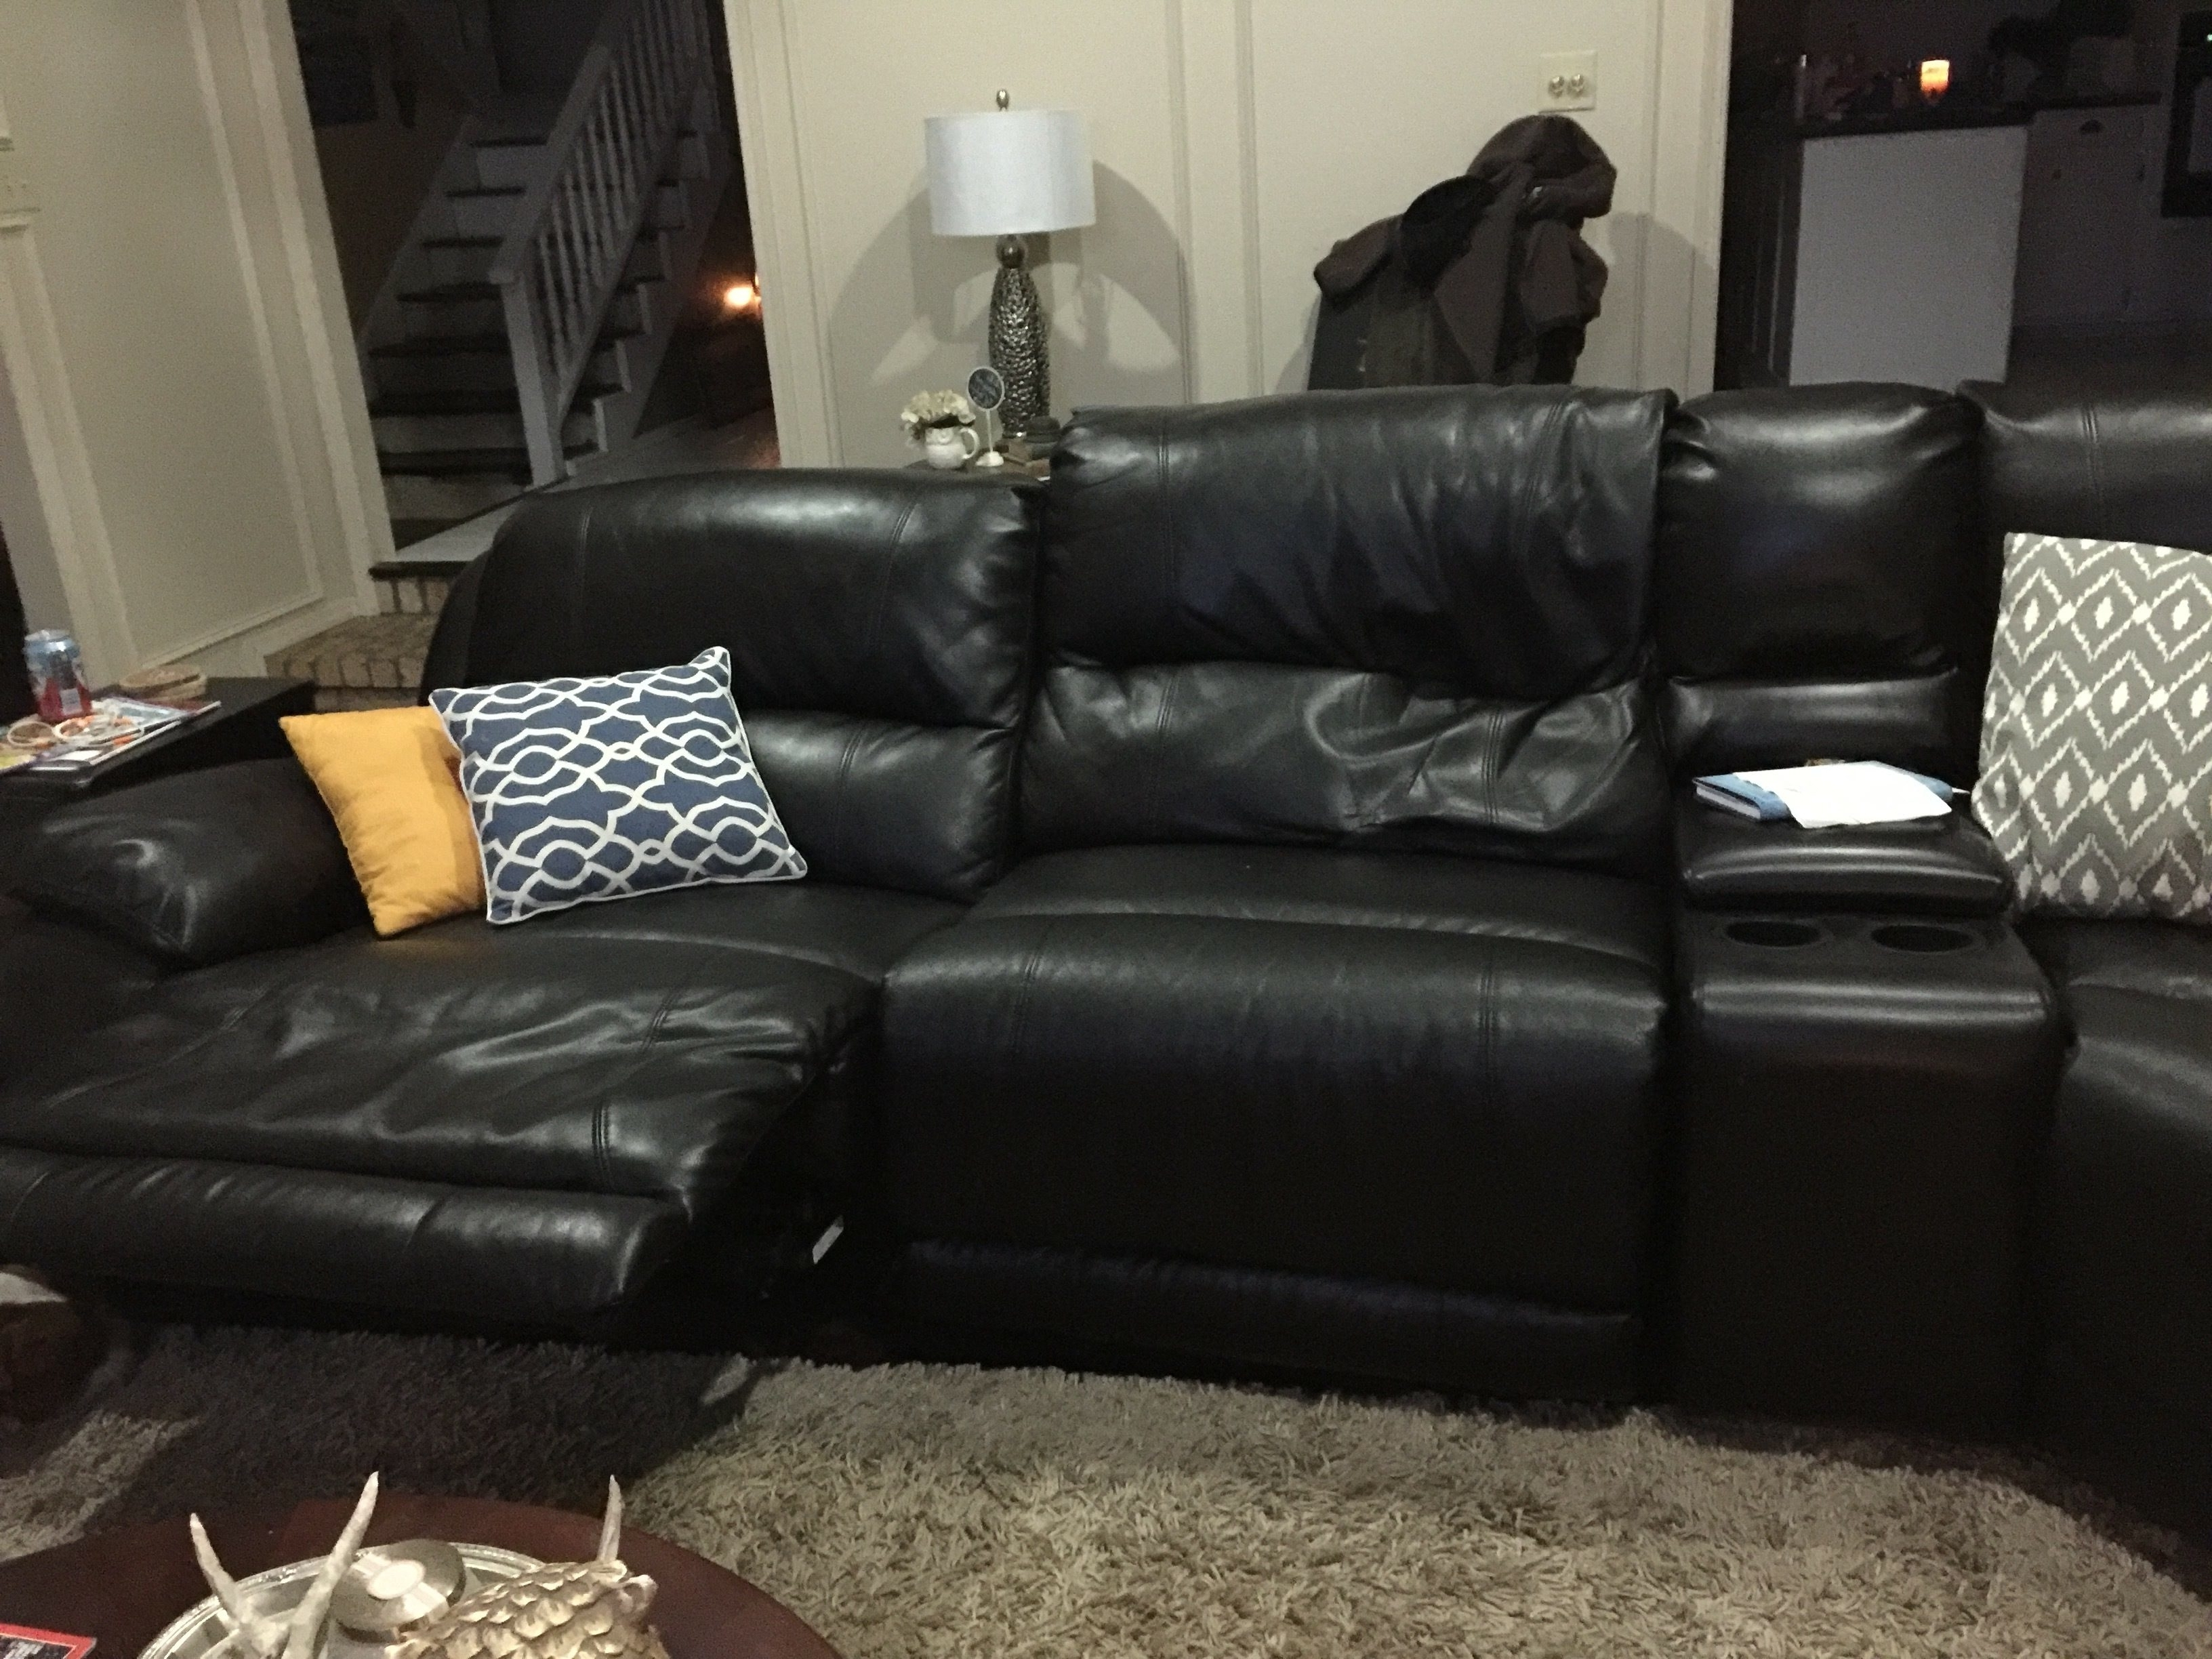 Fashionable Craigslist Leather Sofas Within Trend Craigslist Leather Sofa 31 About Remodel Living Room Sofa (View 12 of 15)